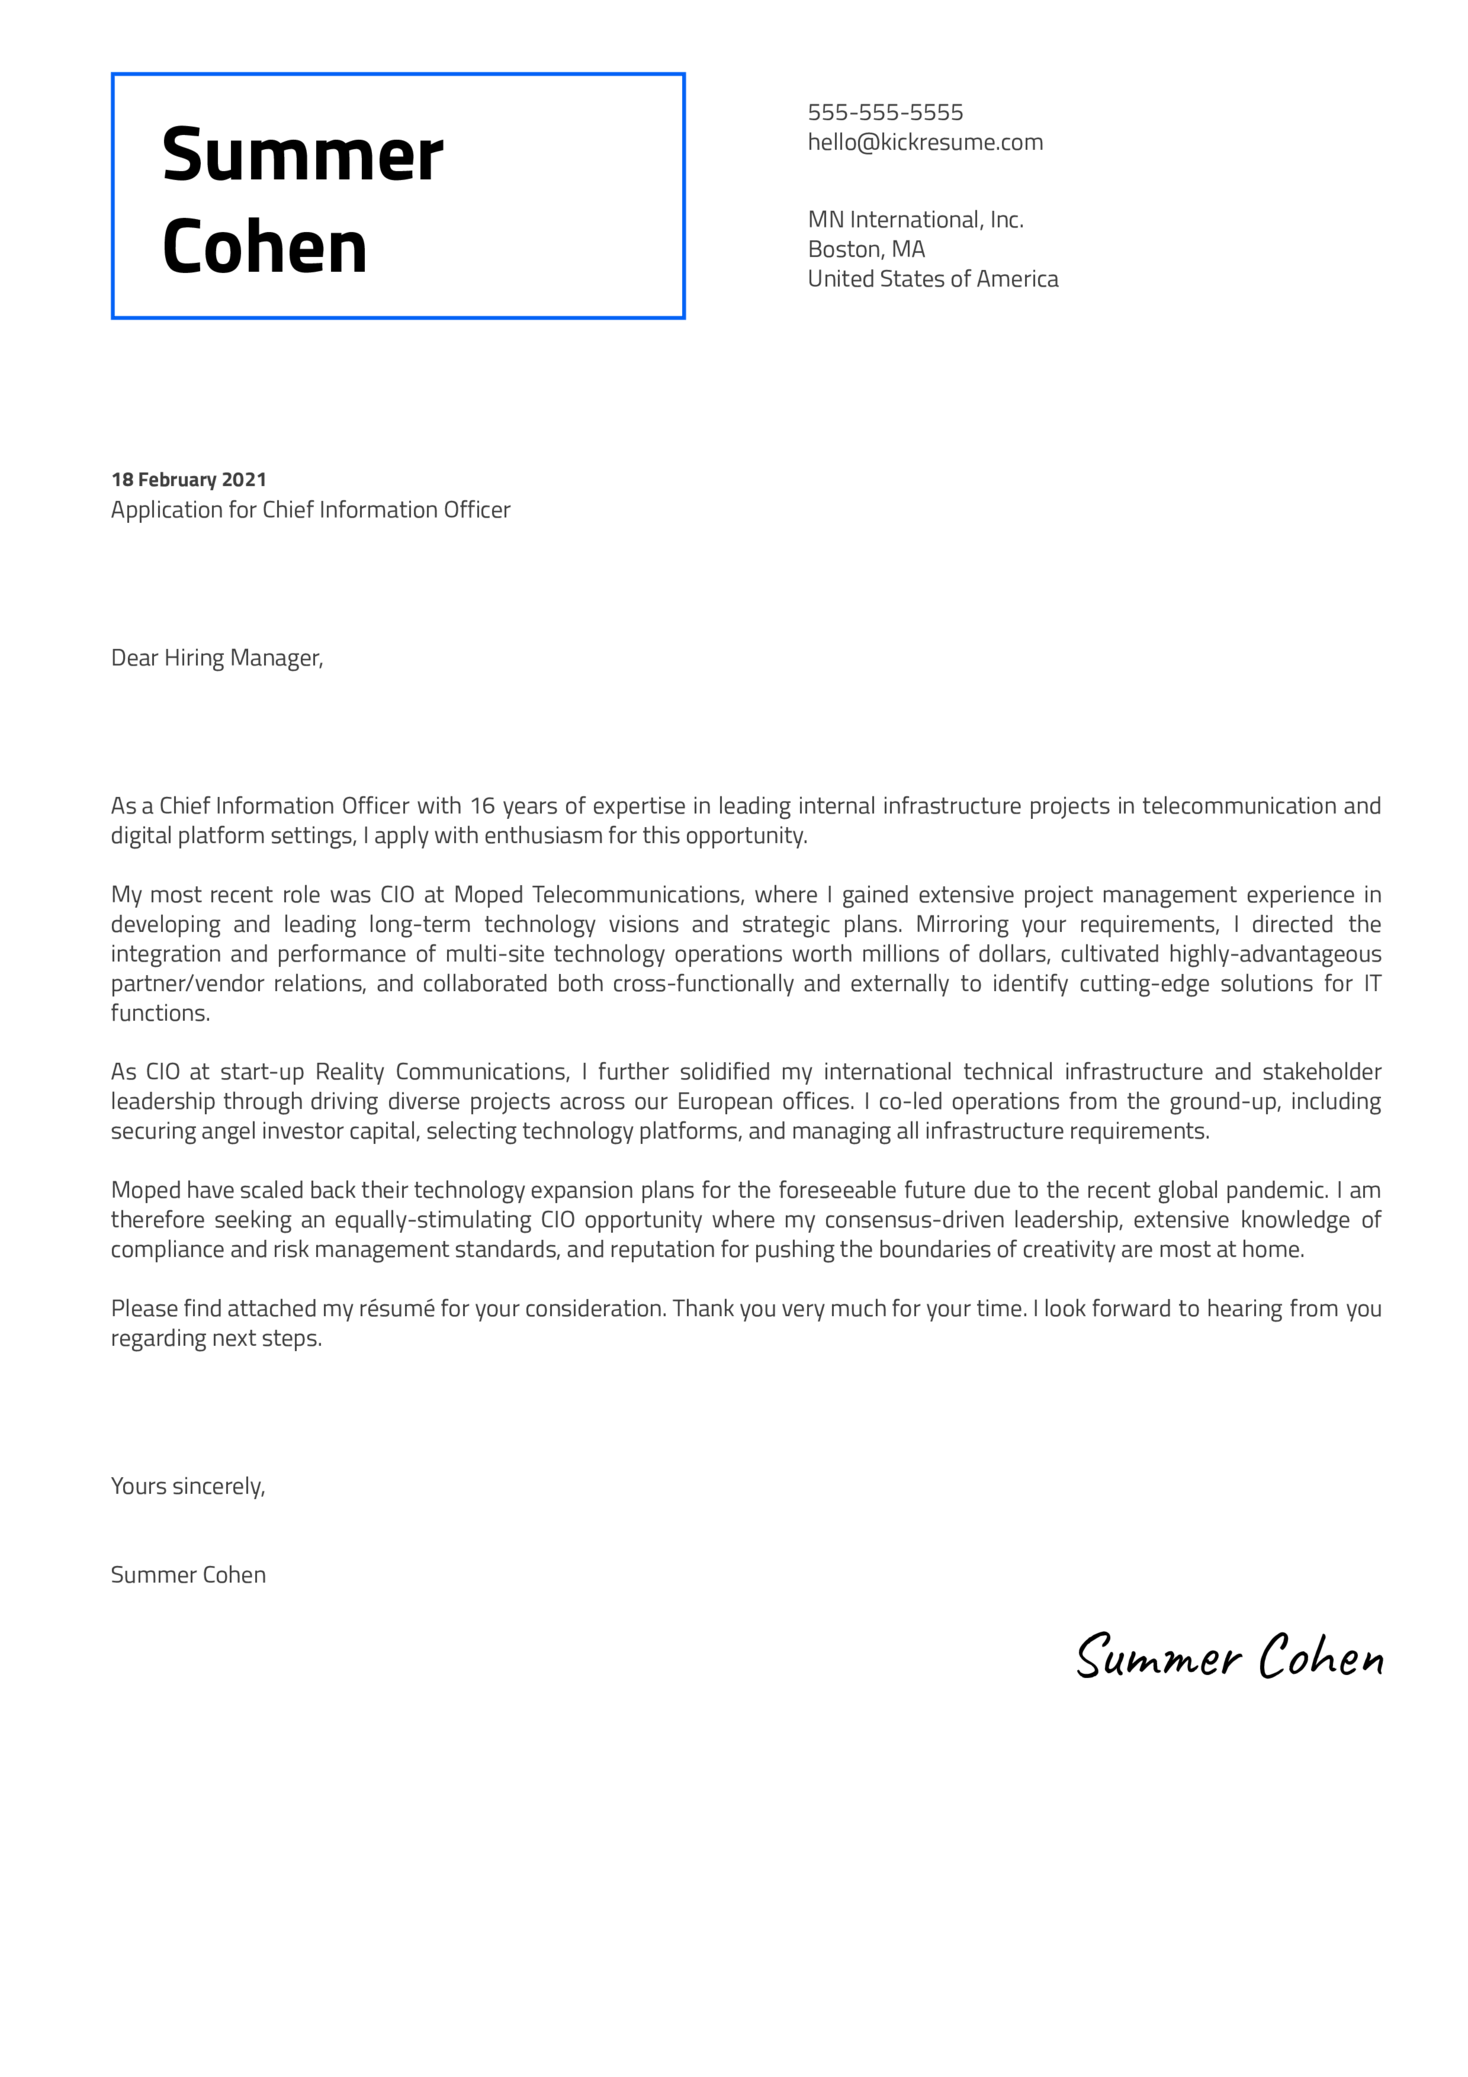 Chief Information Officer Cover Letter Template